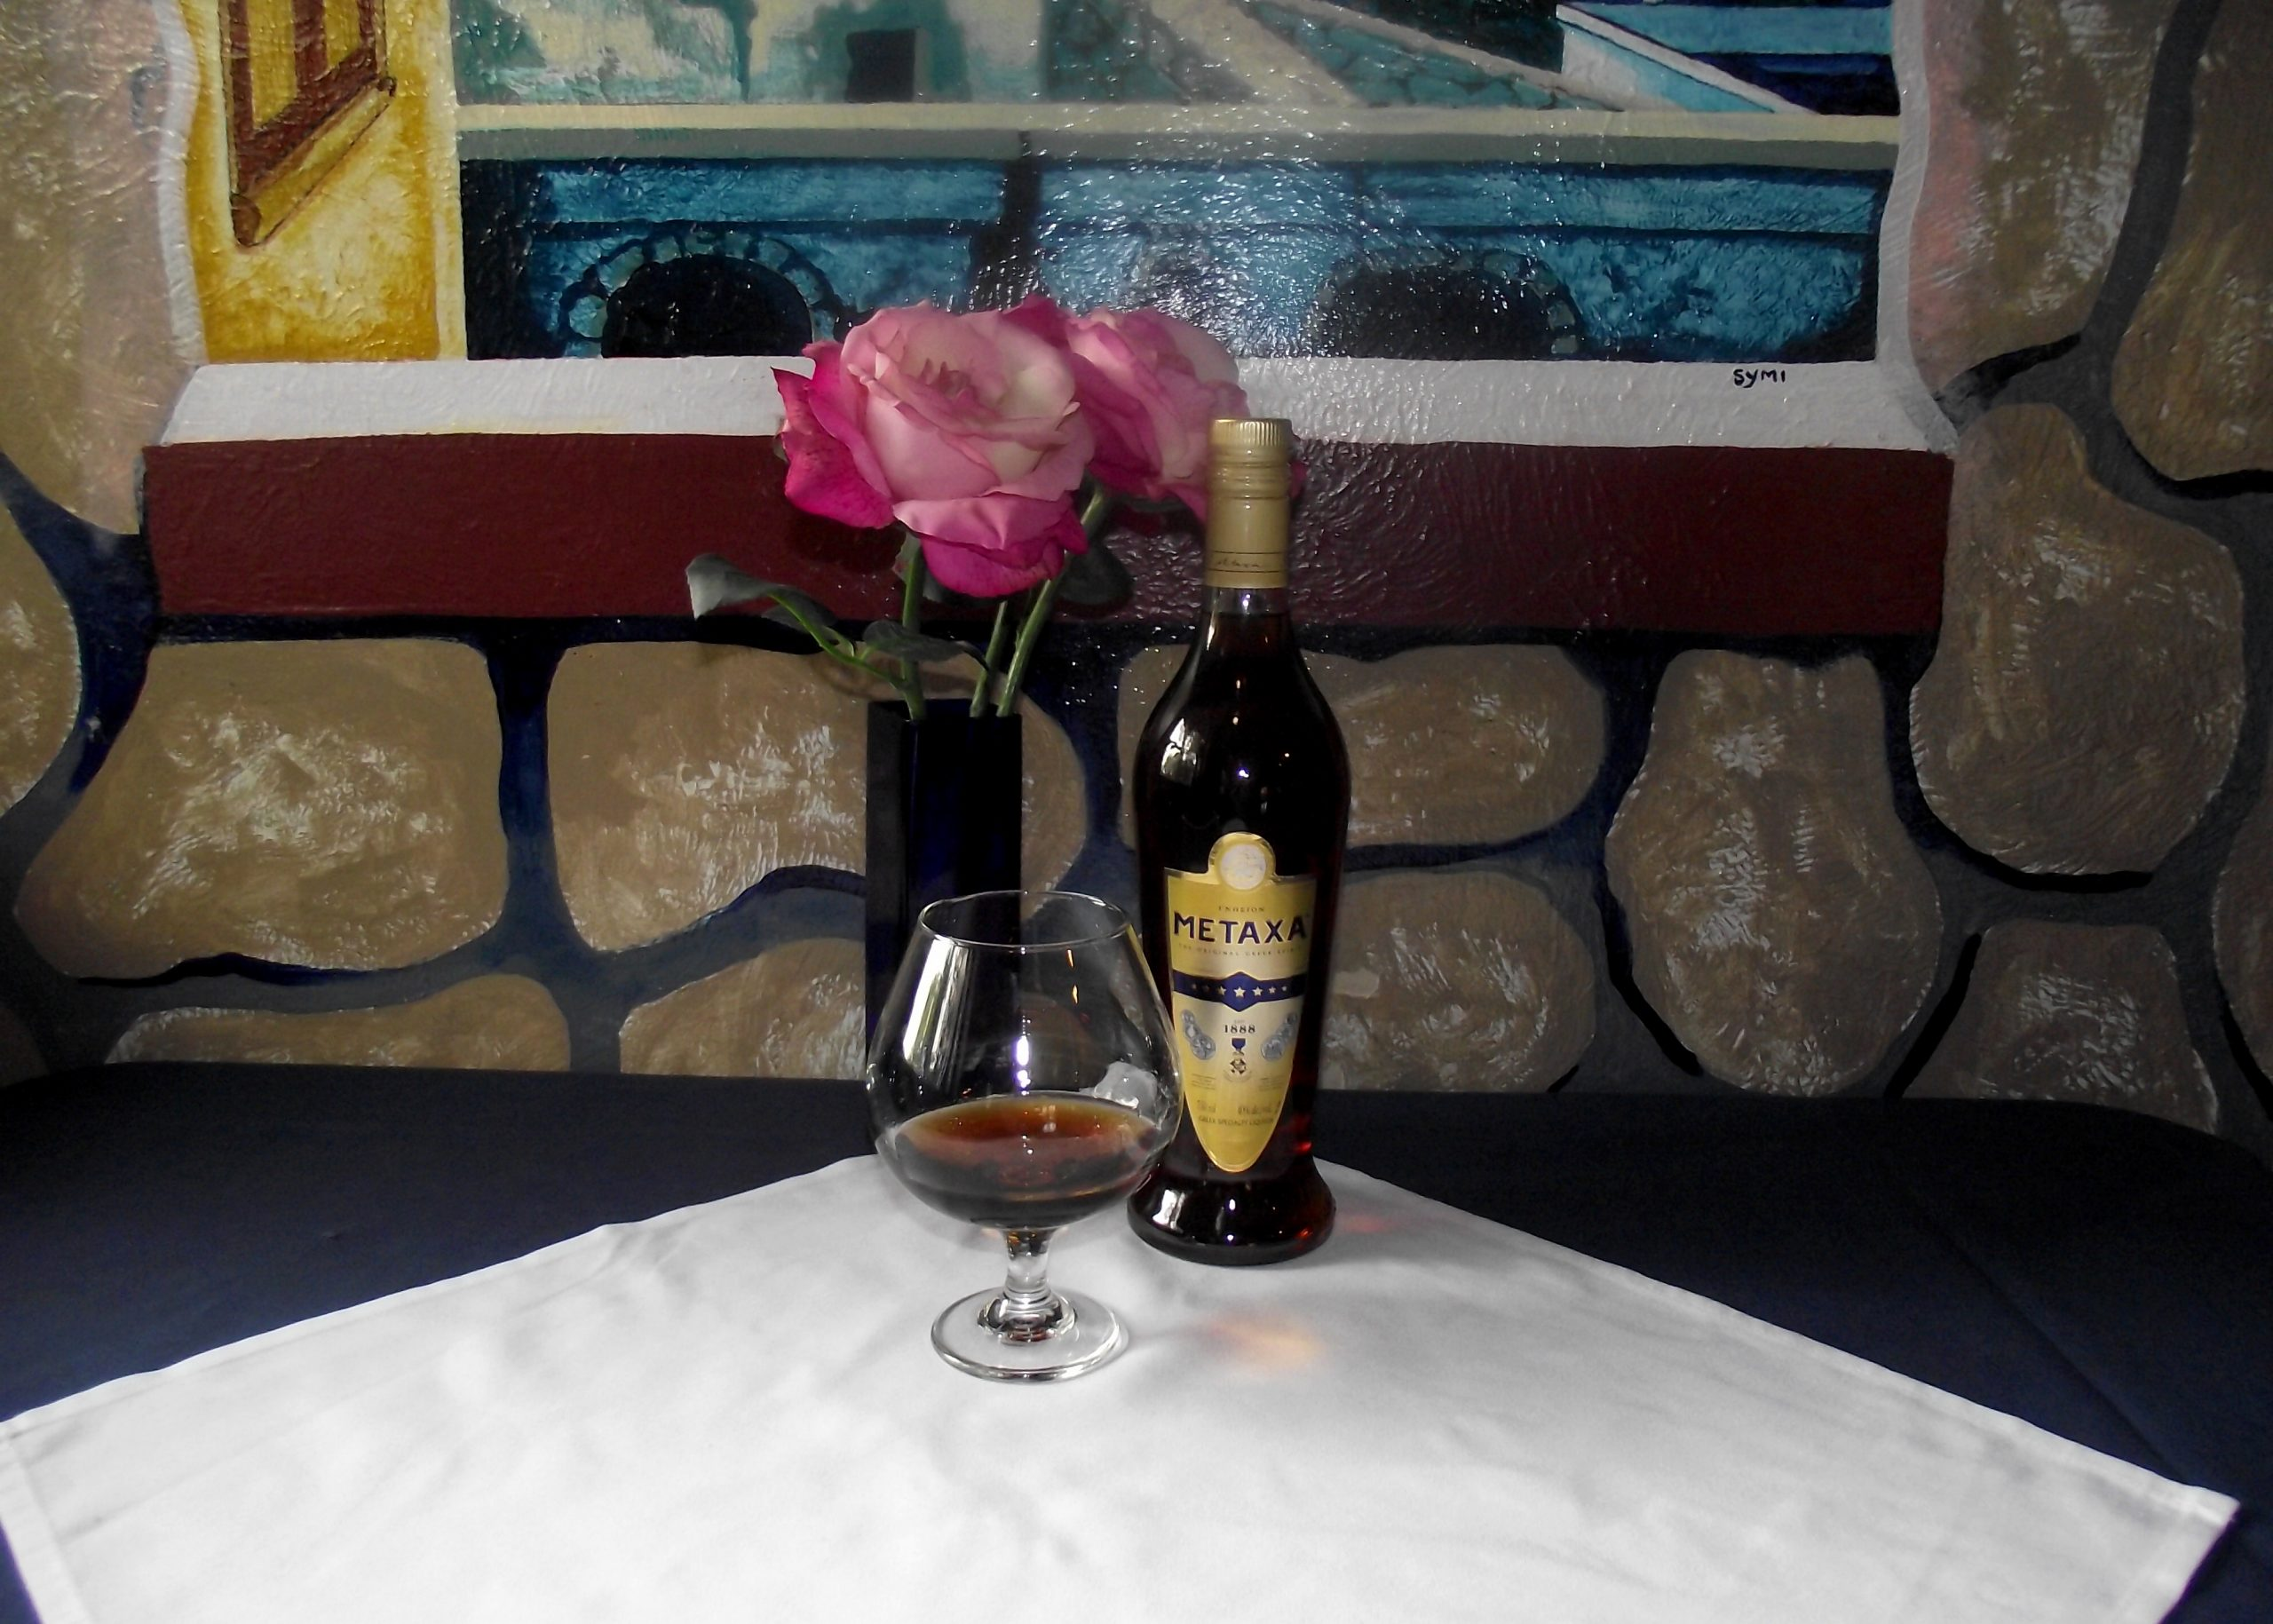 Metaxa: A photo of a brandy snifter with brown liquid setting on a white square tablecloth. A blue vase with pink roses is behind the brandy snifter to the left and a bottle of seven-star Metaxa is behind the brandy snifter to the right. the collage is in front of a frescoed wall depicting a rock wall and a windowsill.